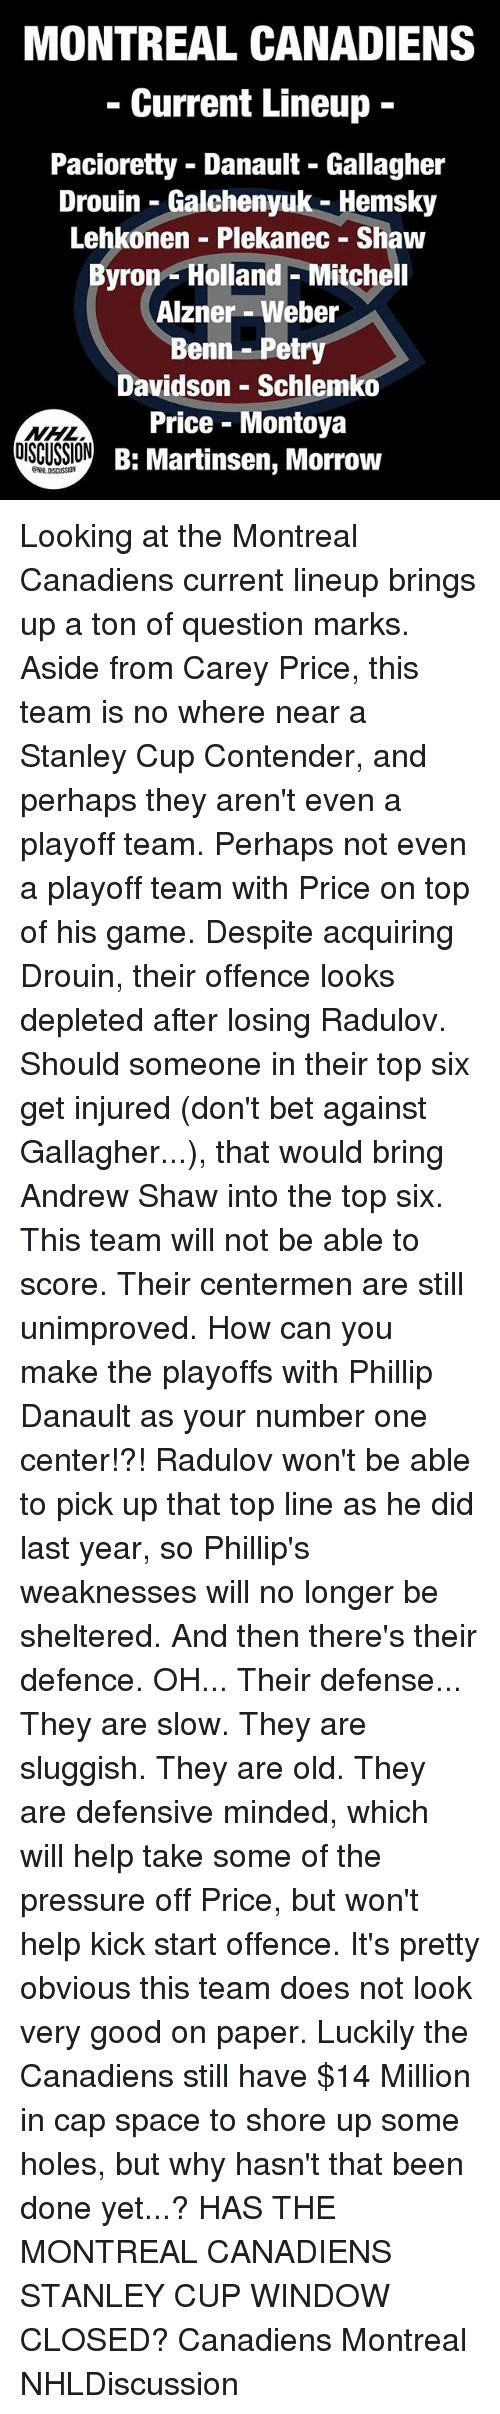 Memes, Pressure, and Holes: MONTREAL CANADIENS  Current Lineup  Pacioretty - Danault - Gallagher  Drouin - Galchenyuk - Hemsky  Lehkonen Plekanec - Shaw  Byron- Holland - Mitchell  Alzner - Weber  Benn-Petry  Davidson - Schlemko  Price - Montoya  B: Martinsen, Morrow  OISCUSSION  NHLDISCUSSION Looking at the Montreal Canadiens current lineup brings up a ton of question marks. Aside from Carey Price, this team is no where near a Stanley Cup Contender, and perhaps they aren't even a playoff team. Perhaps not even a playoff team with Price on top of his game. Despite acquiring Drouin, their offence looks depleted after losing Radulov. Should someone in their top six get injured (don't bet against Gallagher...), that would bring Andrew Shaw into the top six. This team will not be able to score. Their centermen are still unimproved. How can you make the playoffs with Phillip Danault as your number one center!?! Radulov won't be able to pick up that top line as he did last year, so Phillip's weaknesses will no longer be sheltered. And then there's their defence. OH... Their defense... They are slow. They are sluggish. They are old. They are defensive minded, which will help take some of the pressure off Price, but won't help kick start offence. It's pretty obvious this team does not look very good on paper. Luckily the Canadiens still have $14 Million in cap space to shore up some holes, but why hasn't that been done yet...? HAS THE MONTREAL CANADIENS STANLEY CUP WINDOW CLOSED? Canadiens Montreal NHLDiscussion